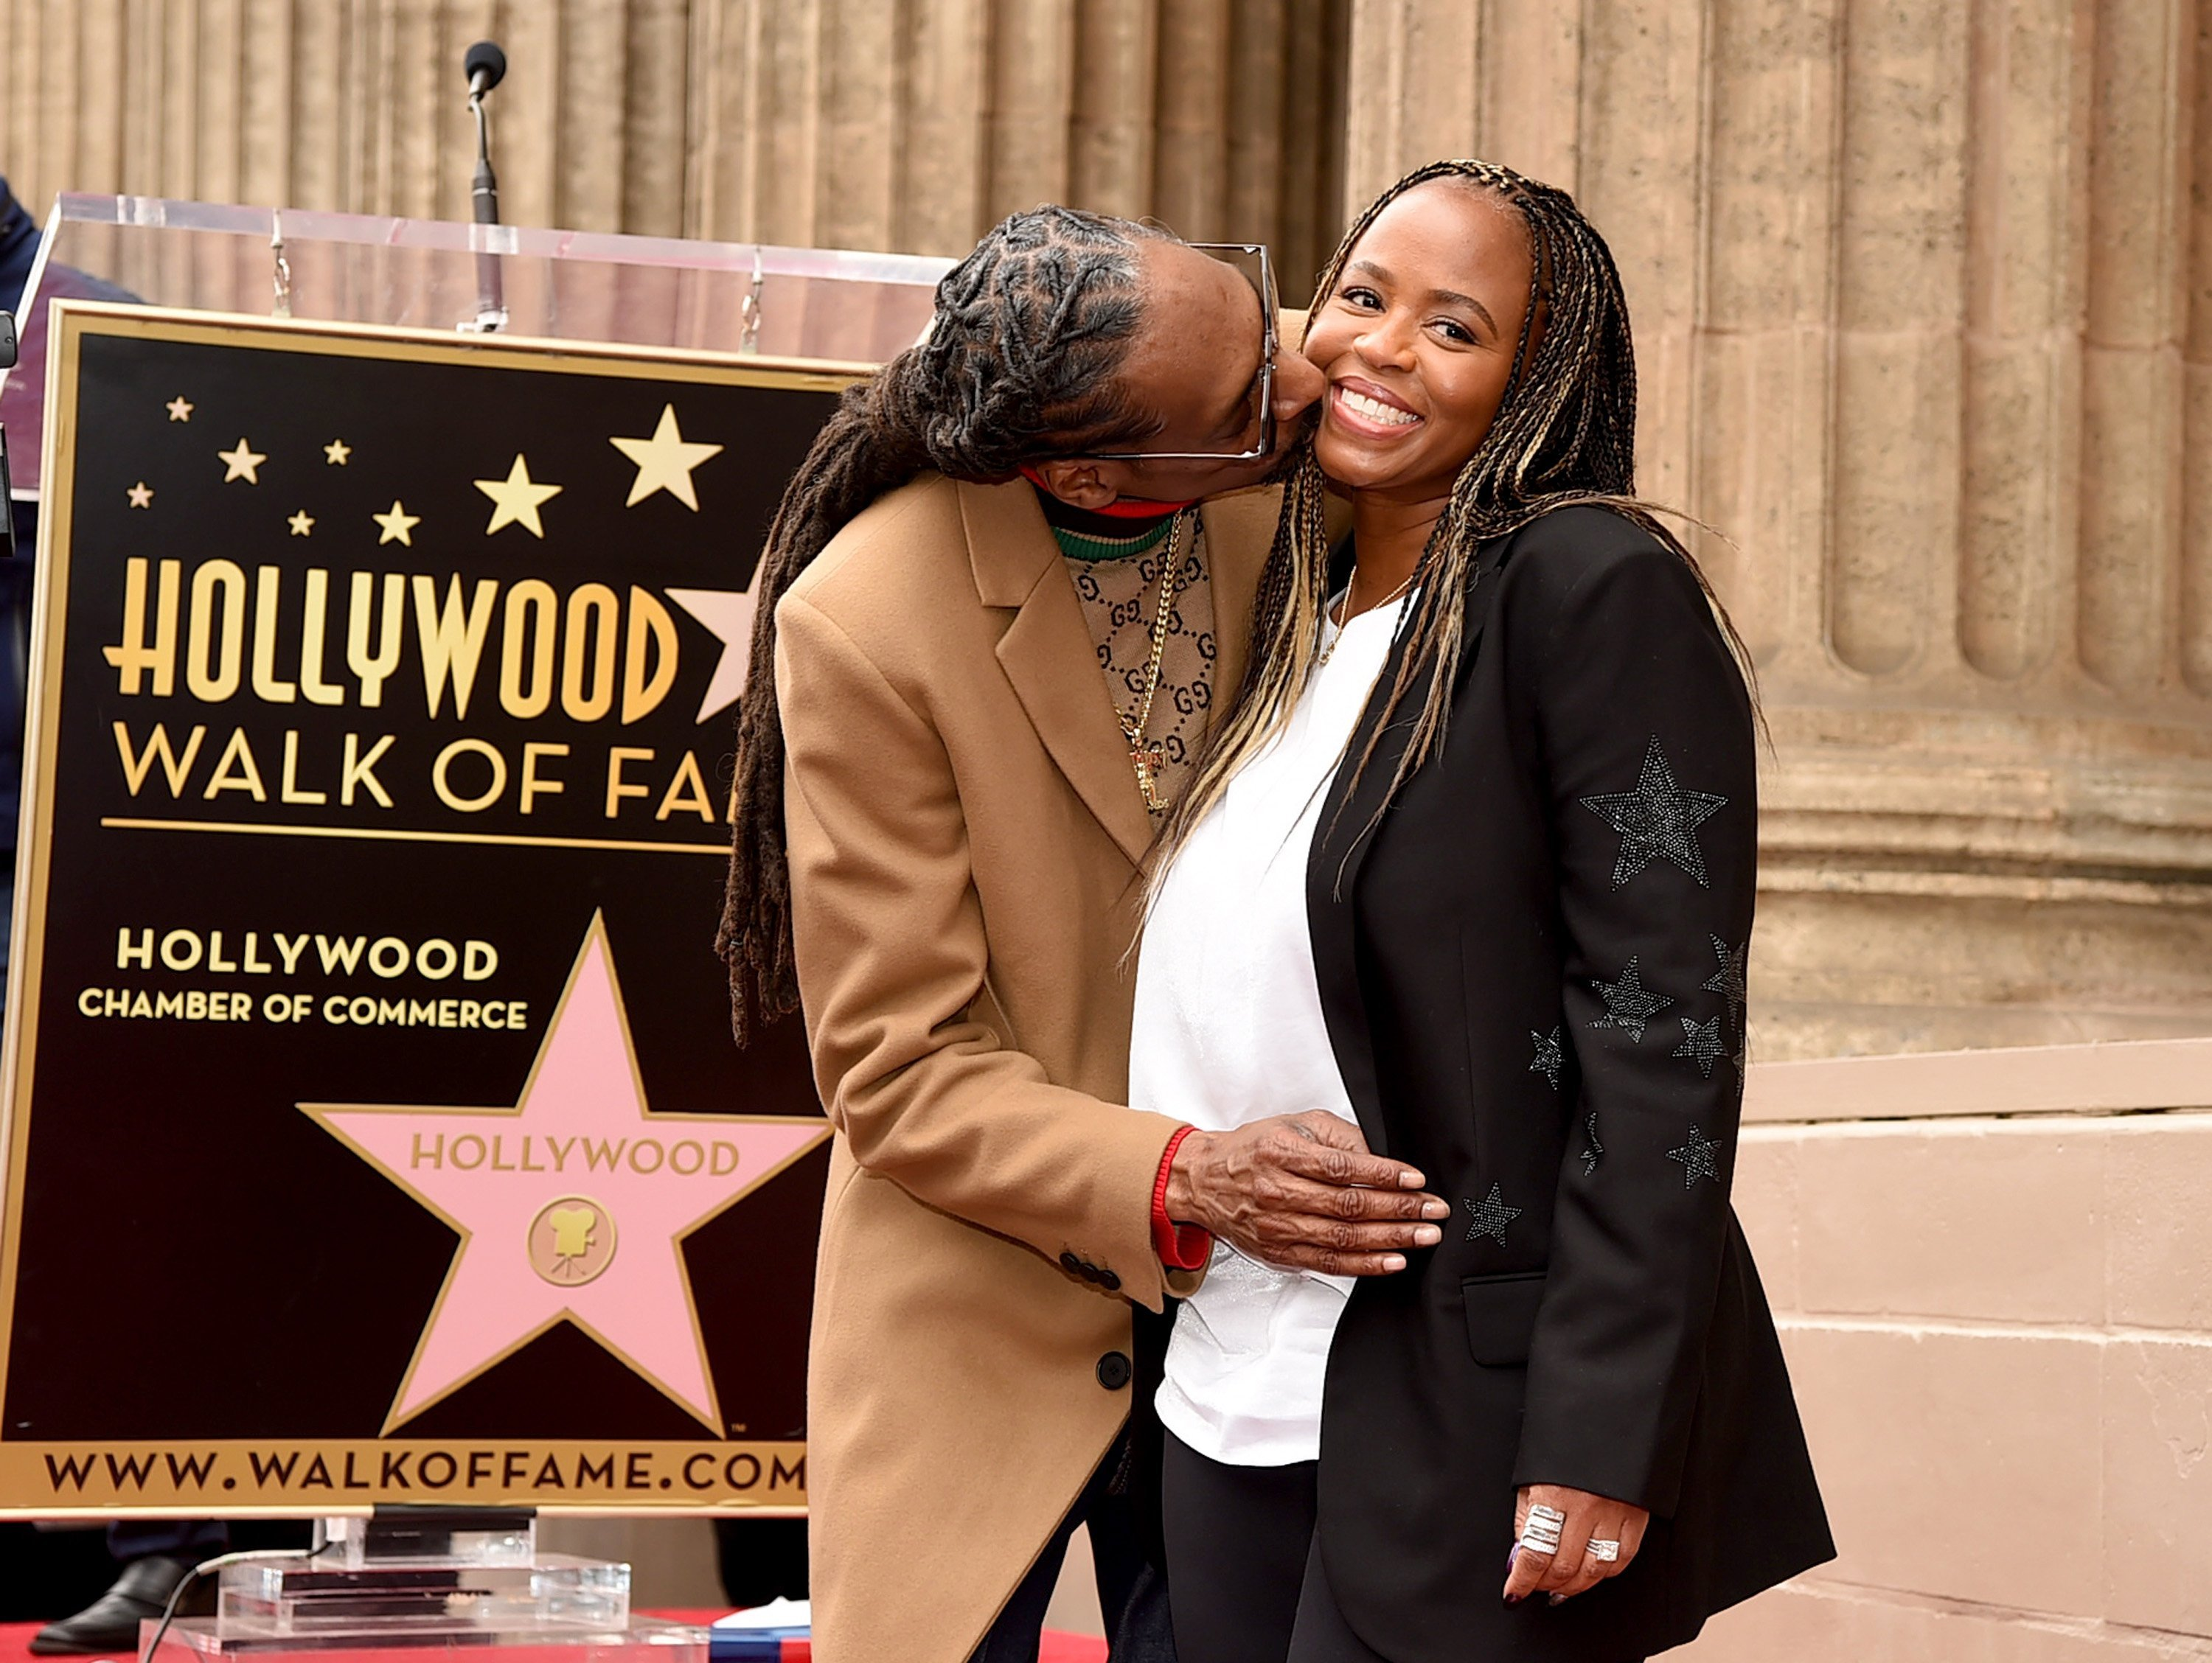 Snoop Dogg, with his wife Shante Broadus, is honored with a star on The Hollywood Walk Of Fame on Nov. 19, 2018 in California   Photo: Getty Images